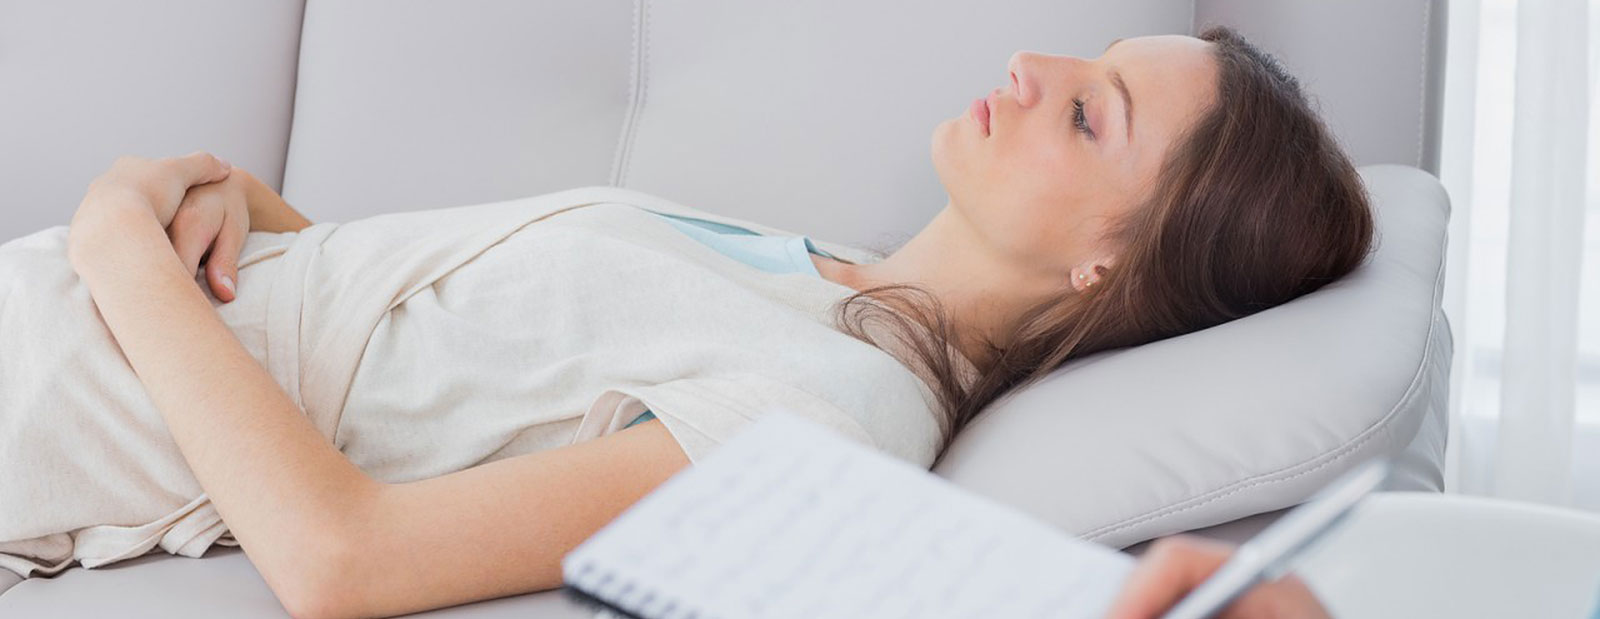 Hypnotherapy for Fears & Phobias